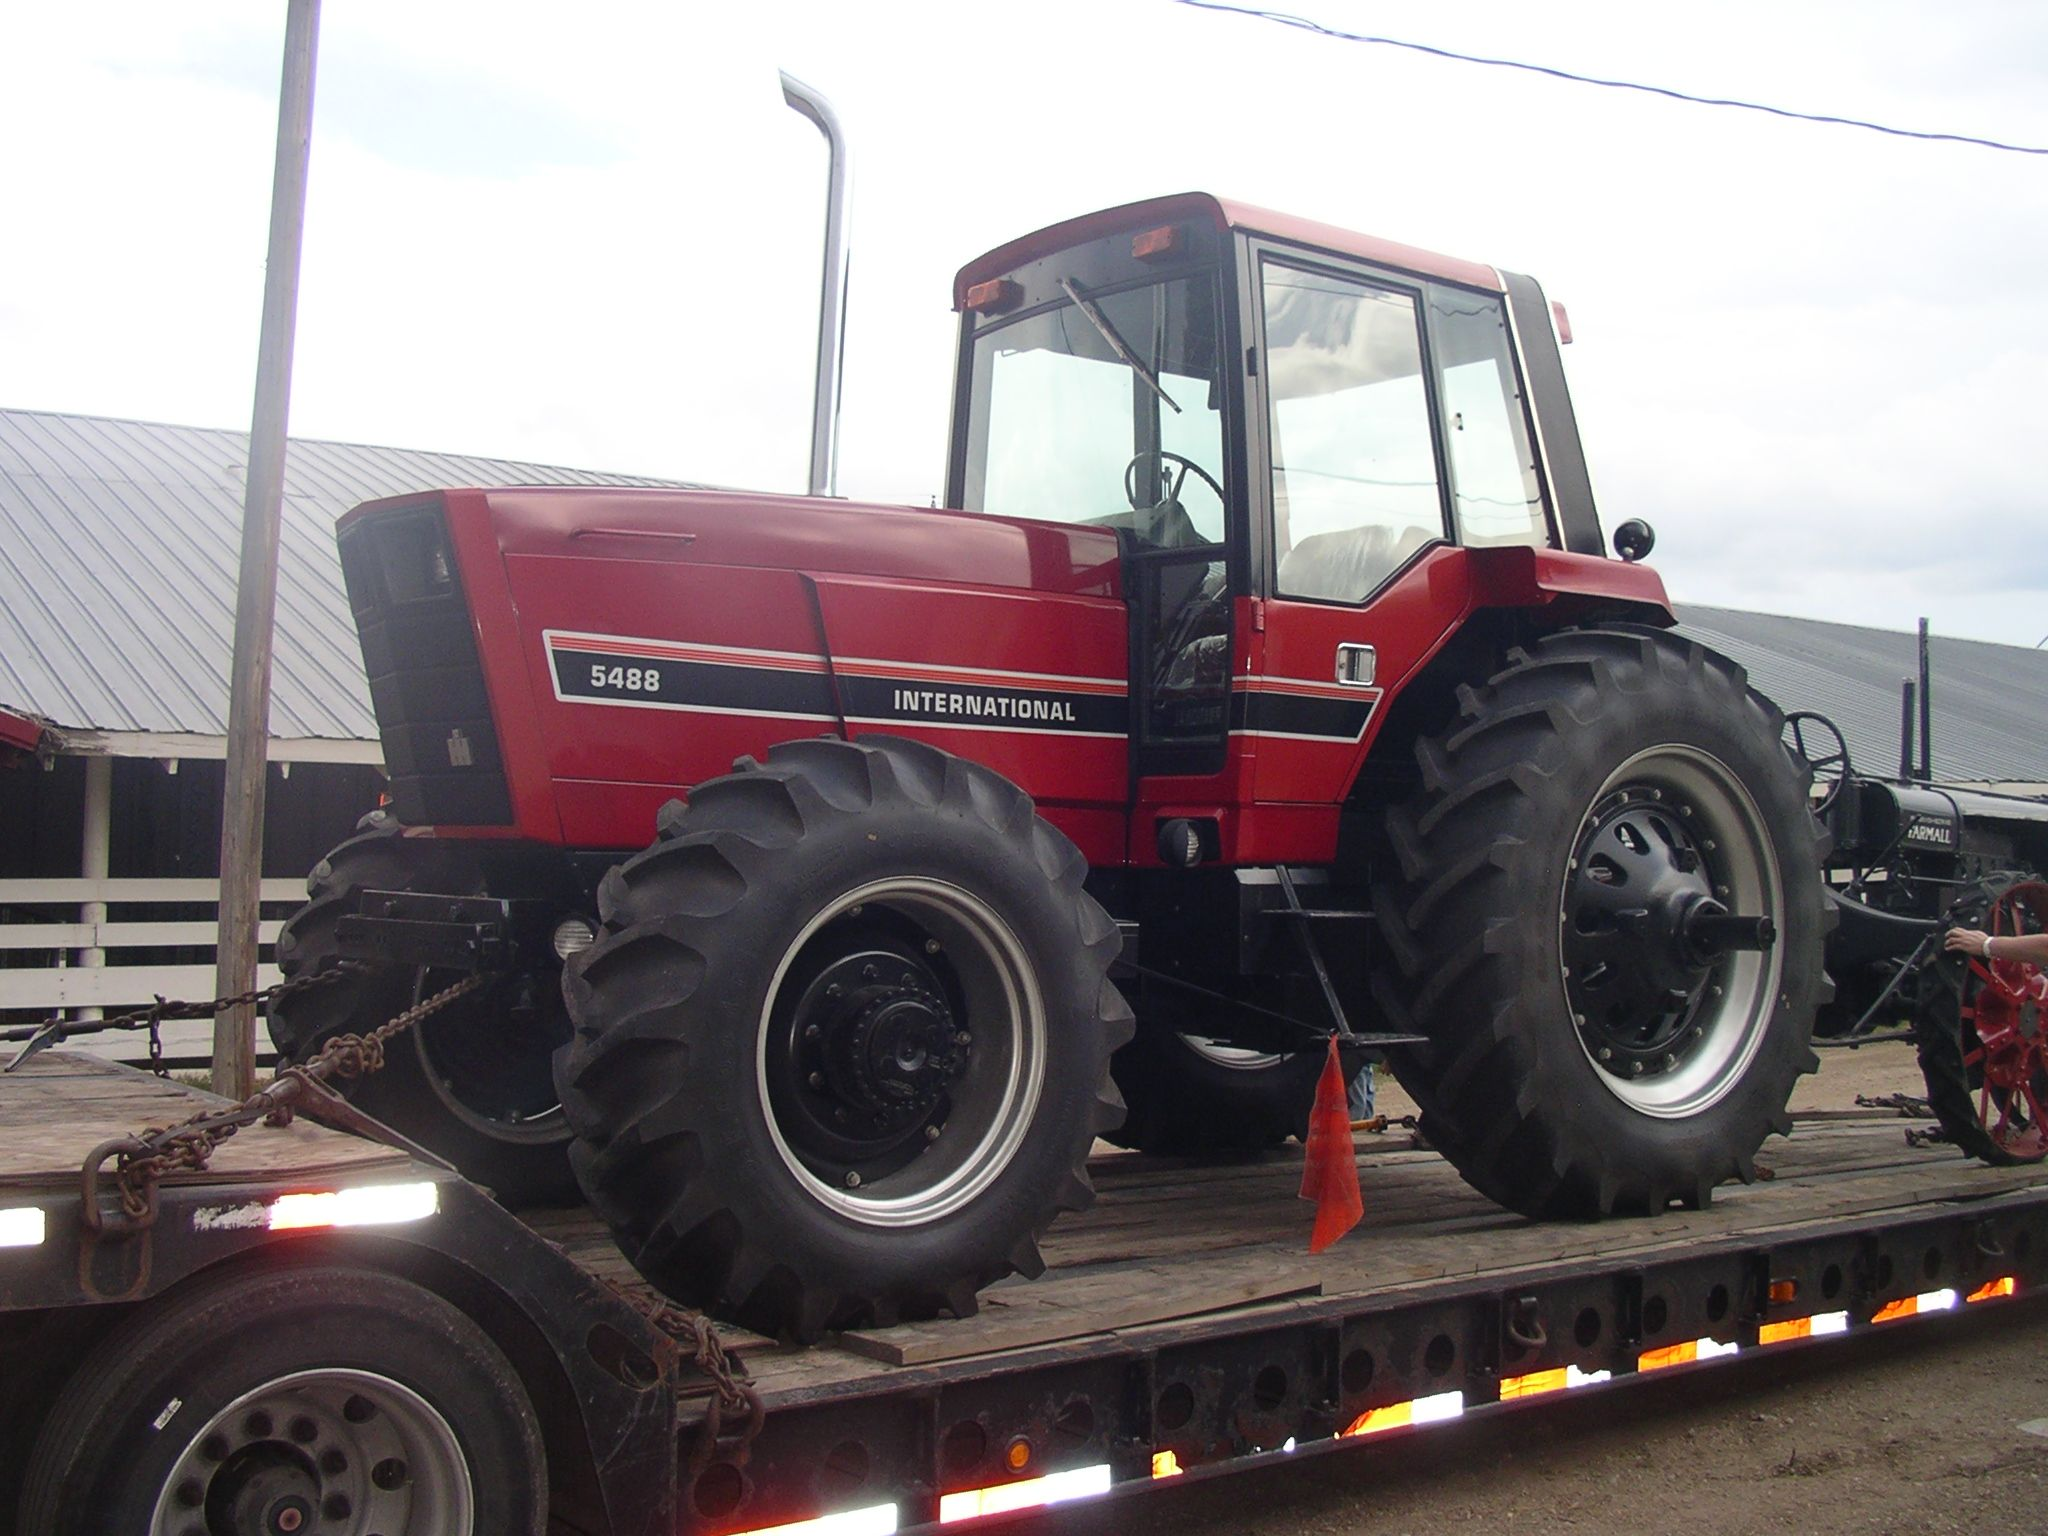 Ih 5488 Last Tractor Off The Rock Island Assembly After Tenneco